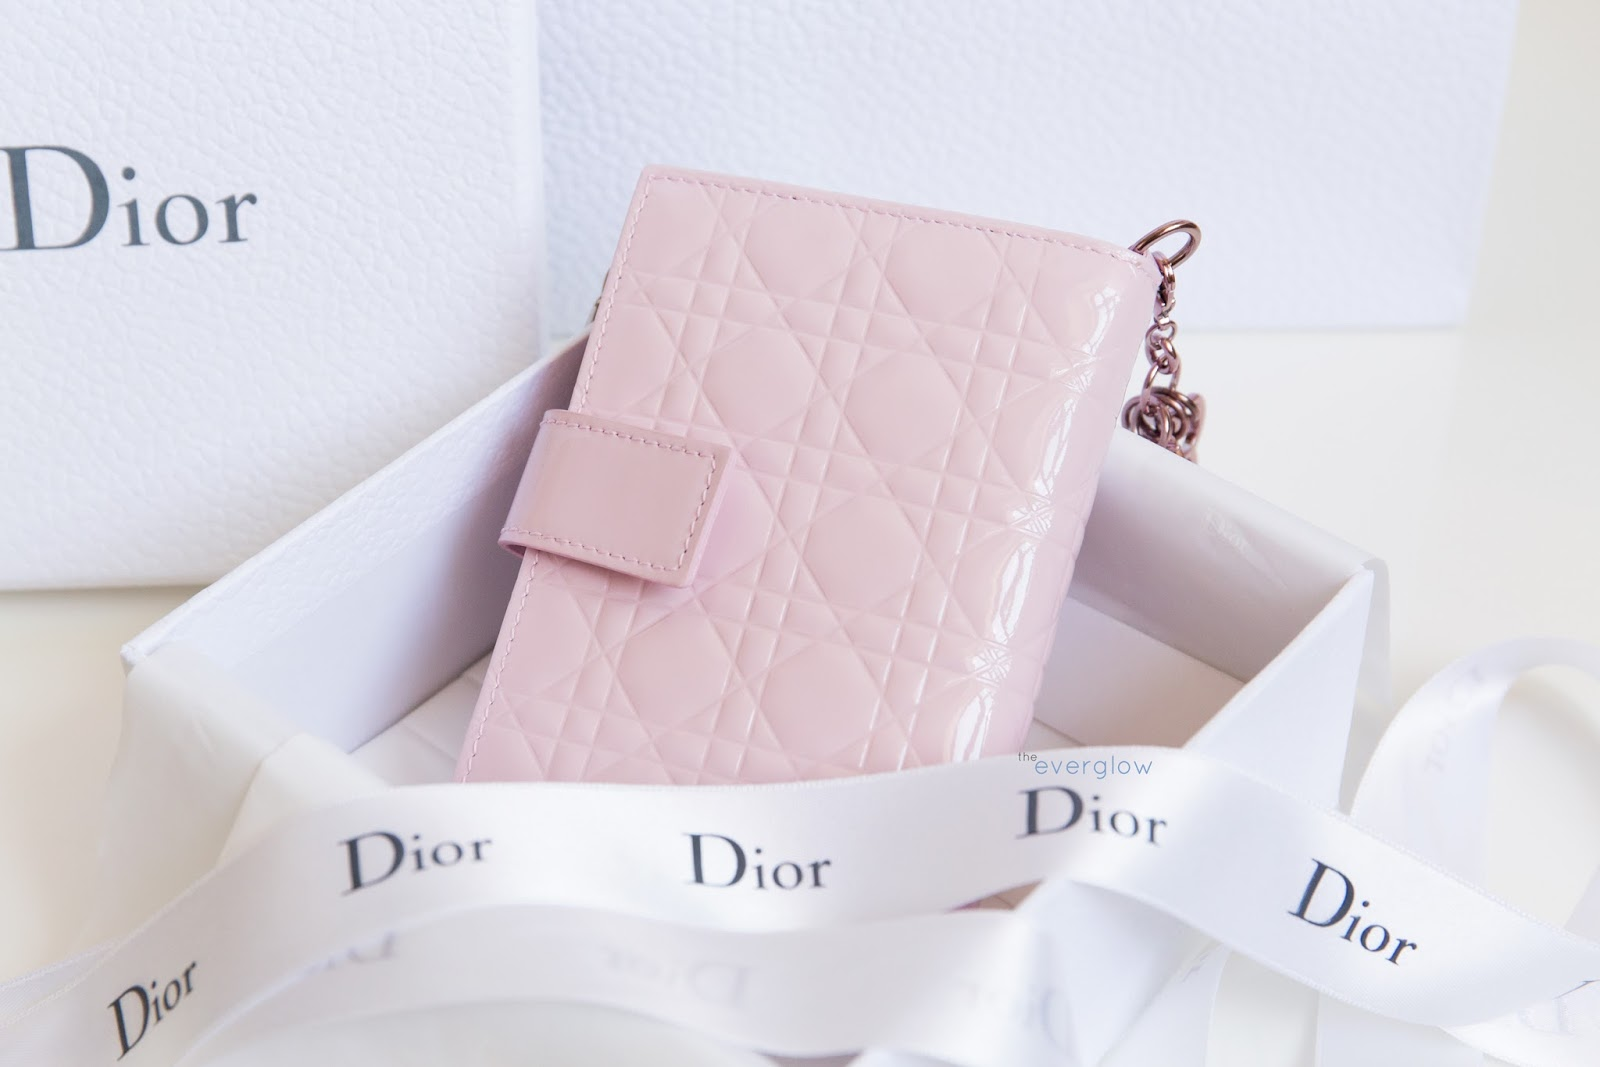 be1cd9f58b1 I also got this pretty Lady Dior patent leather wallet to carry with my  Diorama. I don t know what color it s called, but its light pink color and  smaller ...